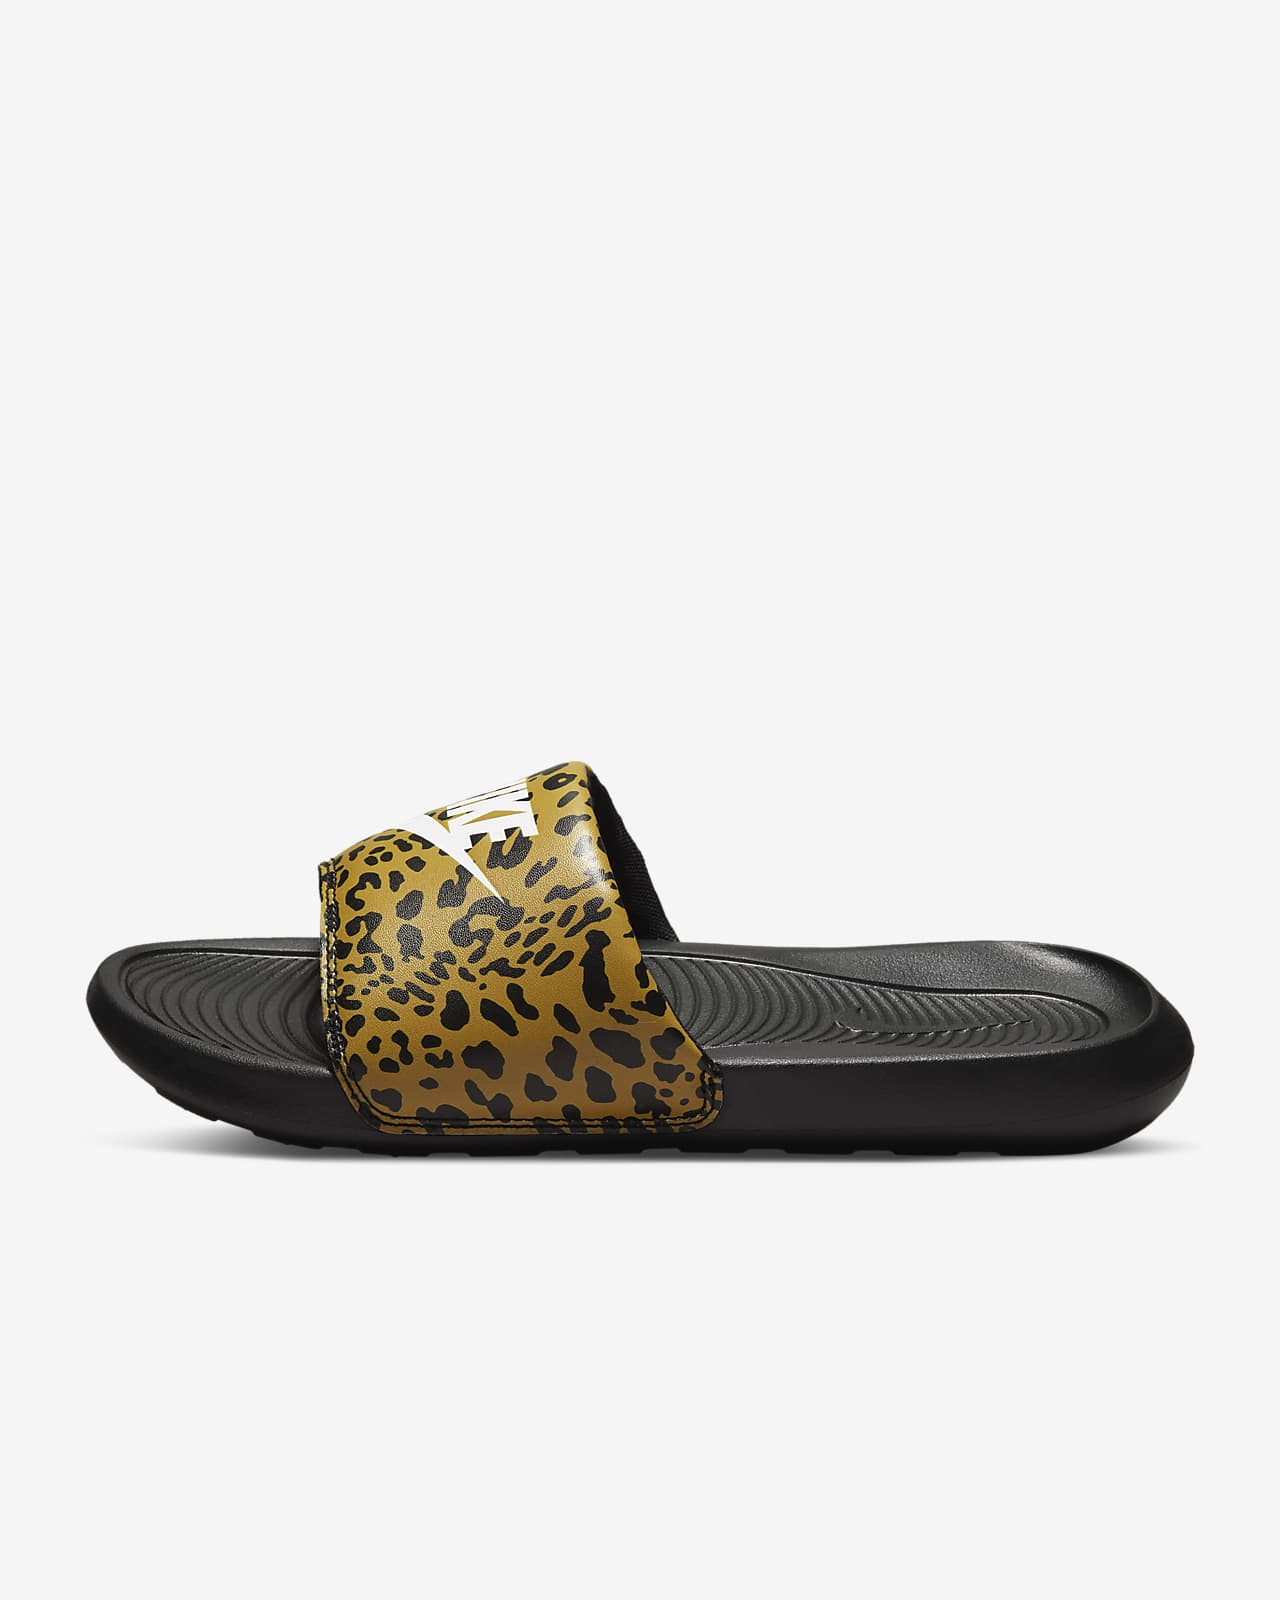 Nike Victori One Women's Print Slide